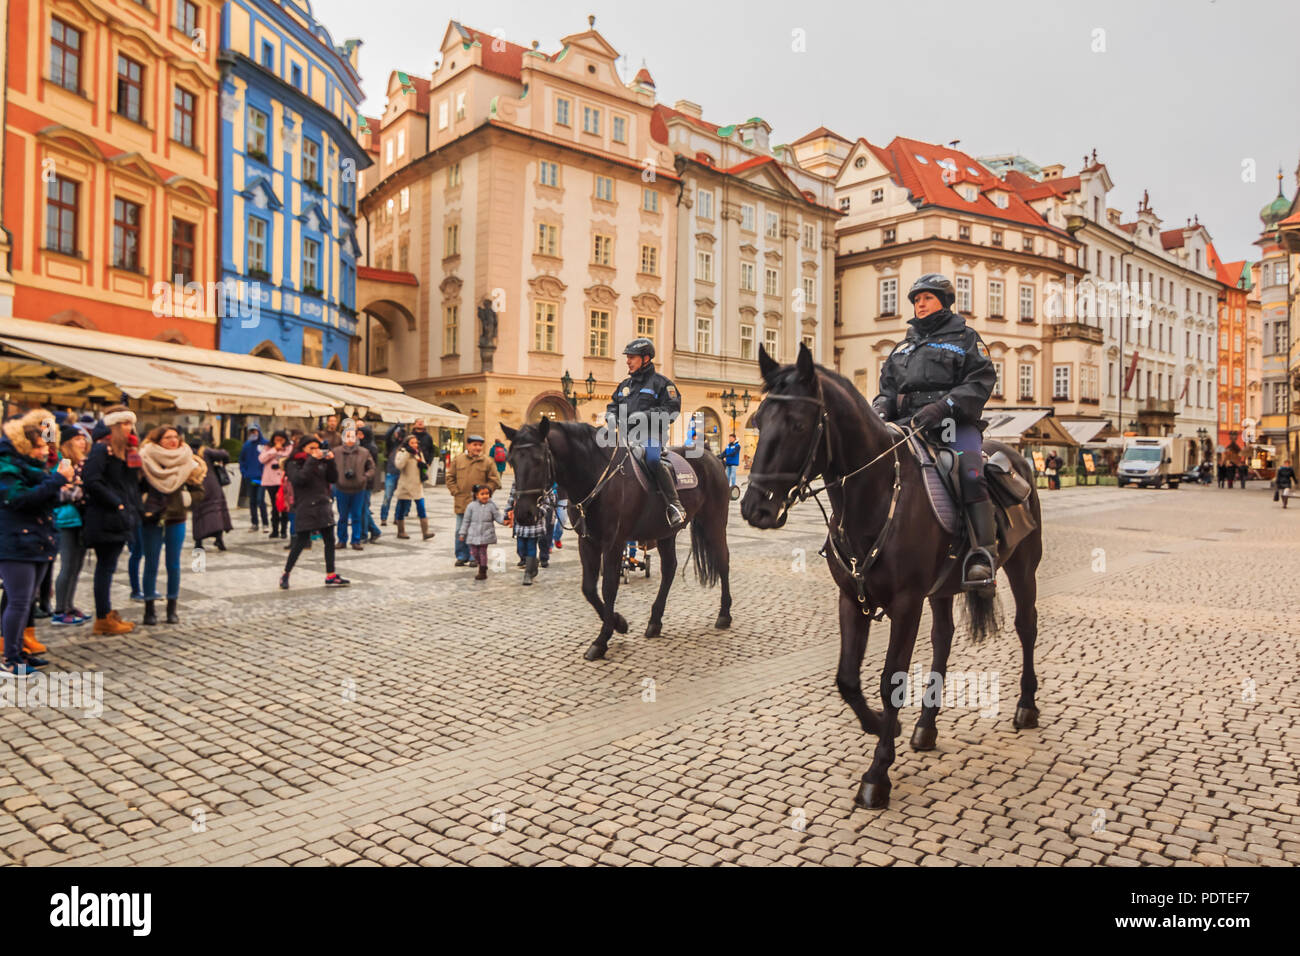 Prague, Czech Republic - January 15, 2015: Czech mounted police officers on horses in the Old Town Square and people walking in the street - Stock Image